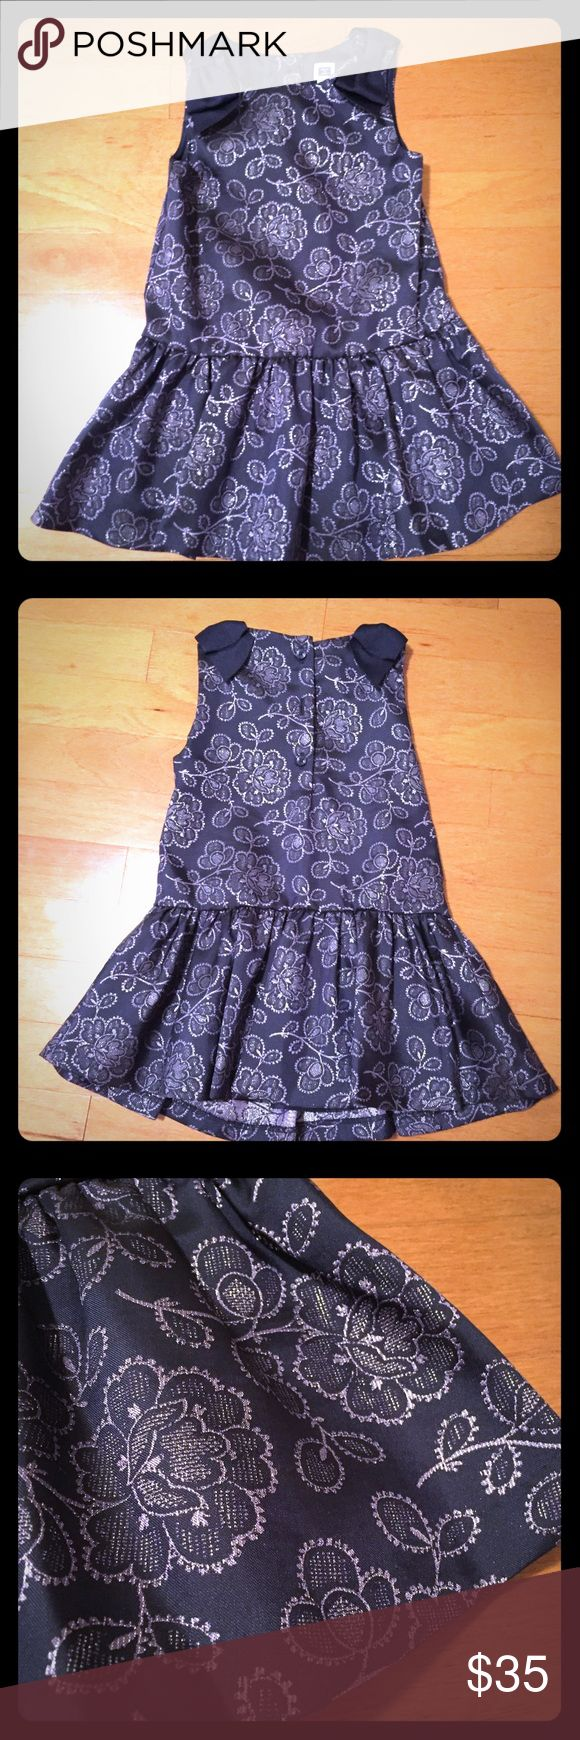 Janie and Jack Special Occasion Dress Beautiful navy and silver special occasion dress by Janie and Jack. Worn once. Size 18-24 months. Janie and Jack Dresses Formal